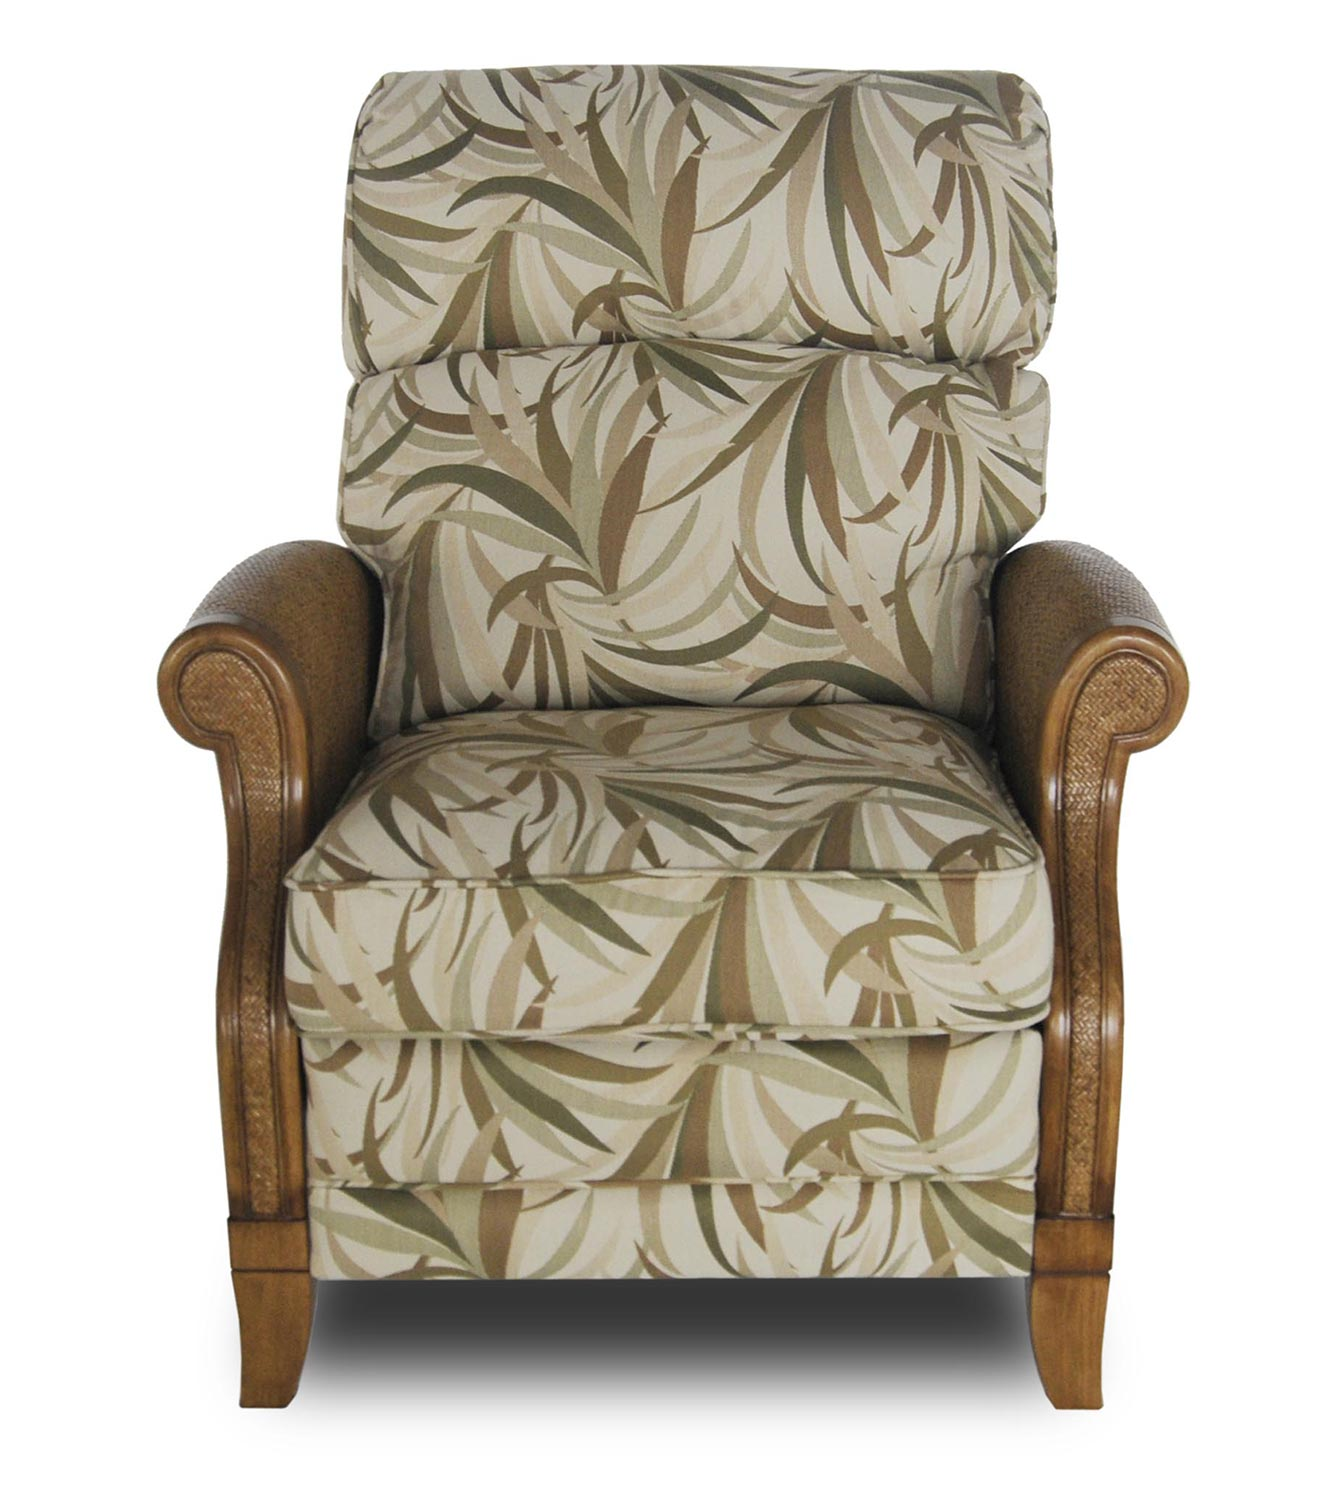 Info about Barcalounger Malaysia Basil Nassau ll Woodland Reserve Recliner Chair Product Photo